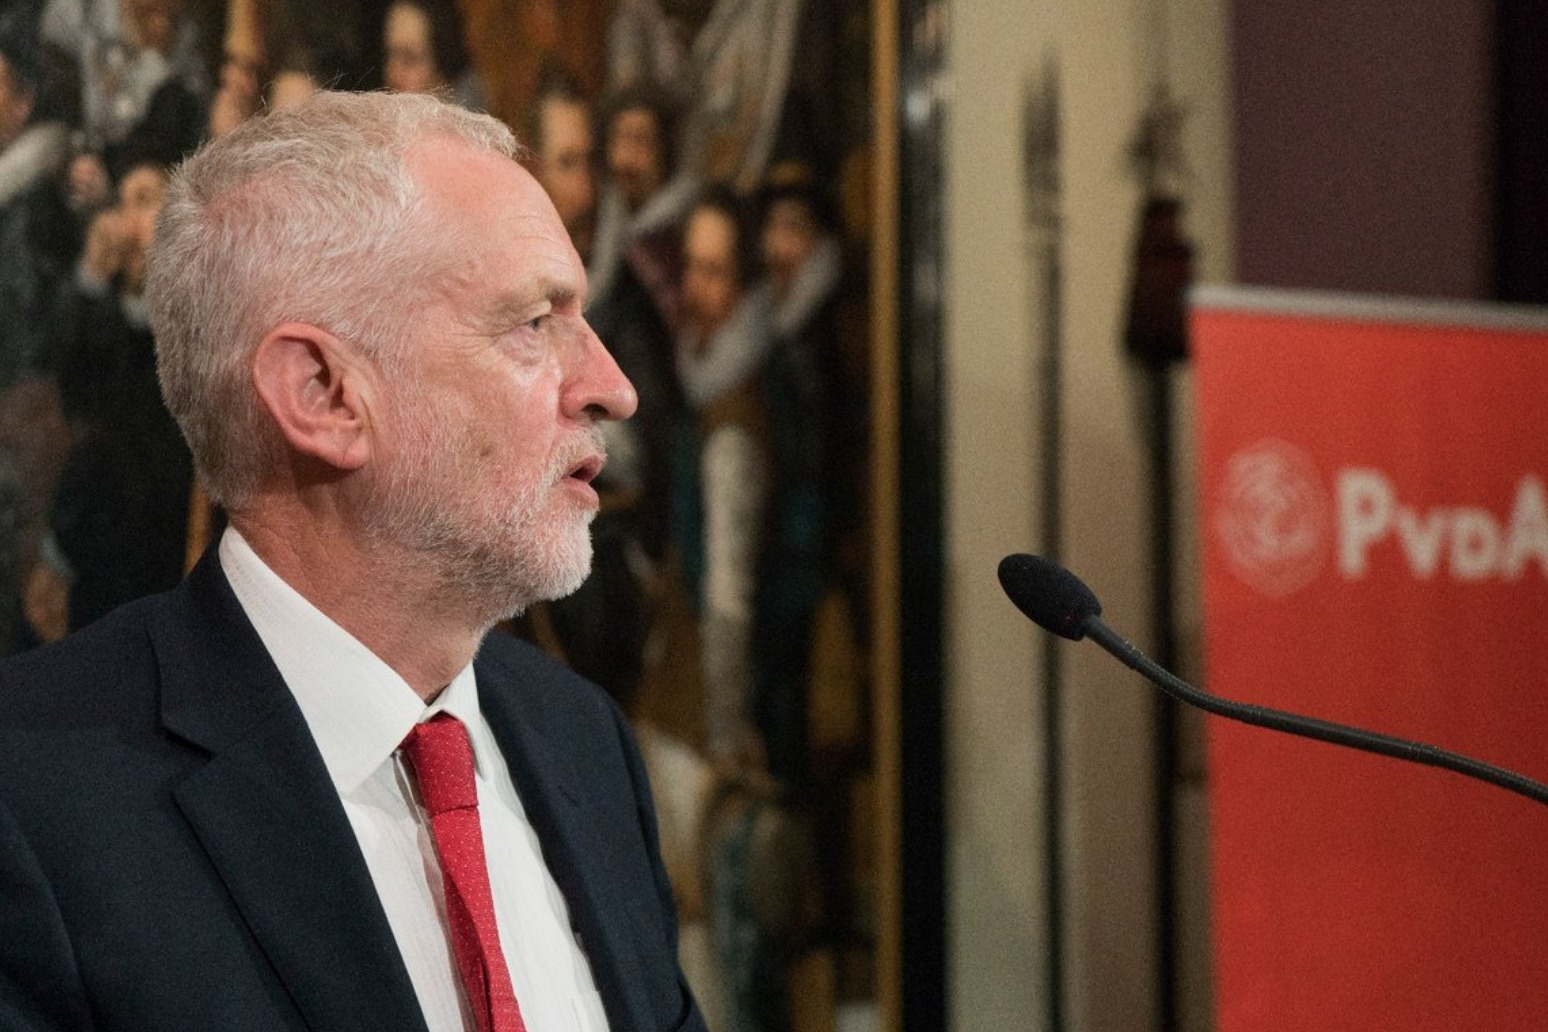 Corbyn says Antisemitism a real problem in his party